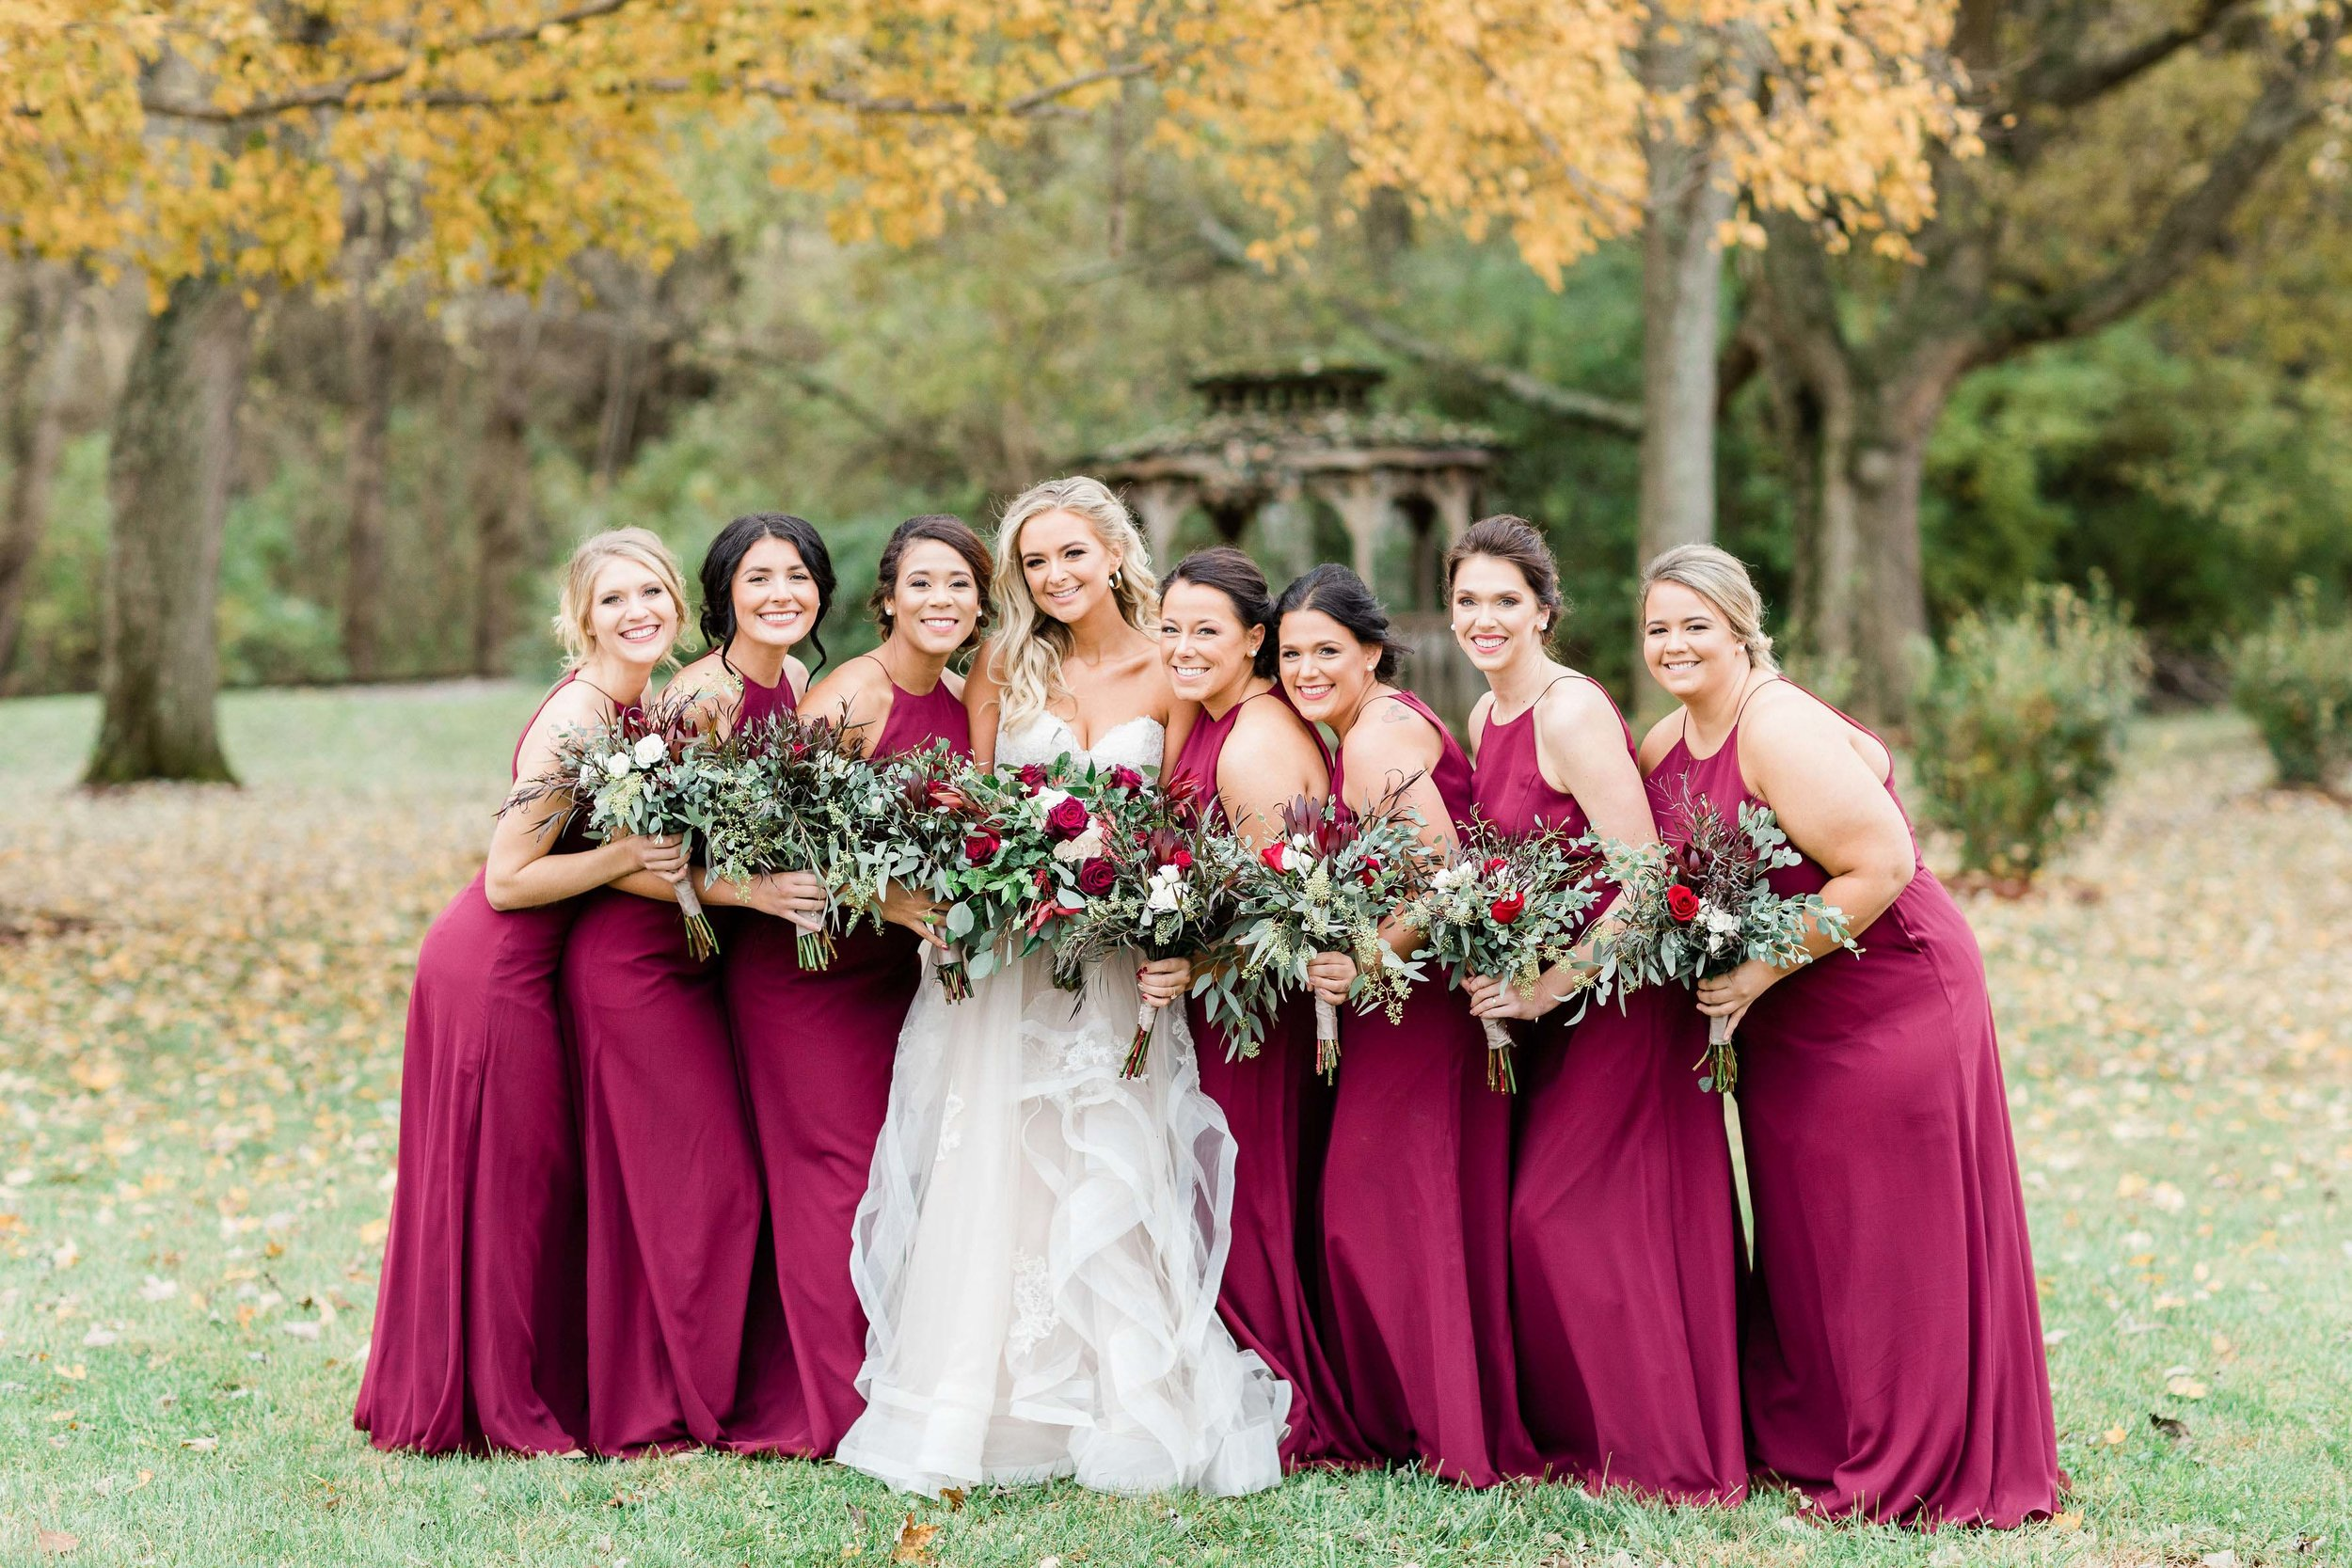 lauren day photography cincinnati dayton wedding photographer-1.jpg